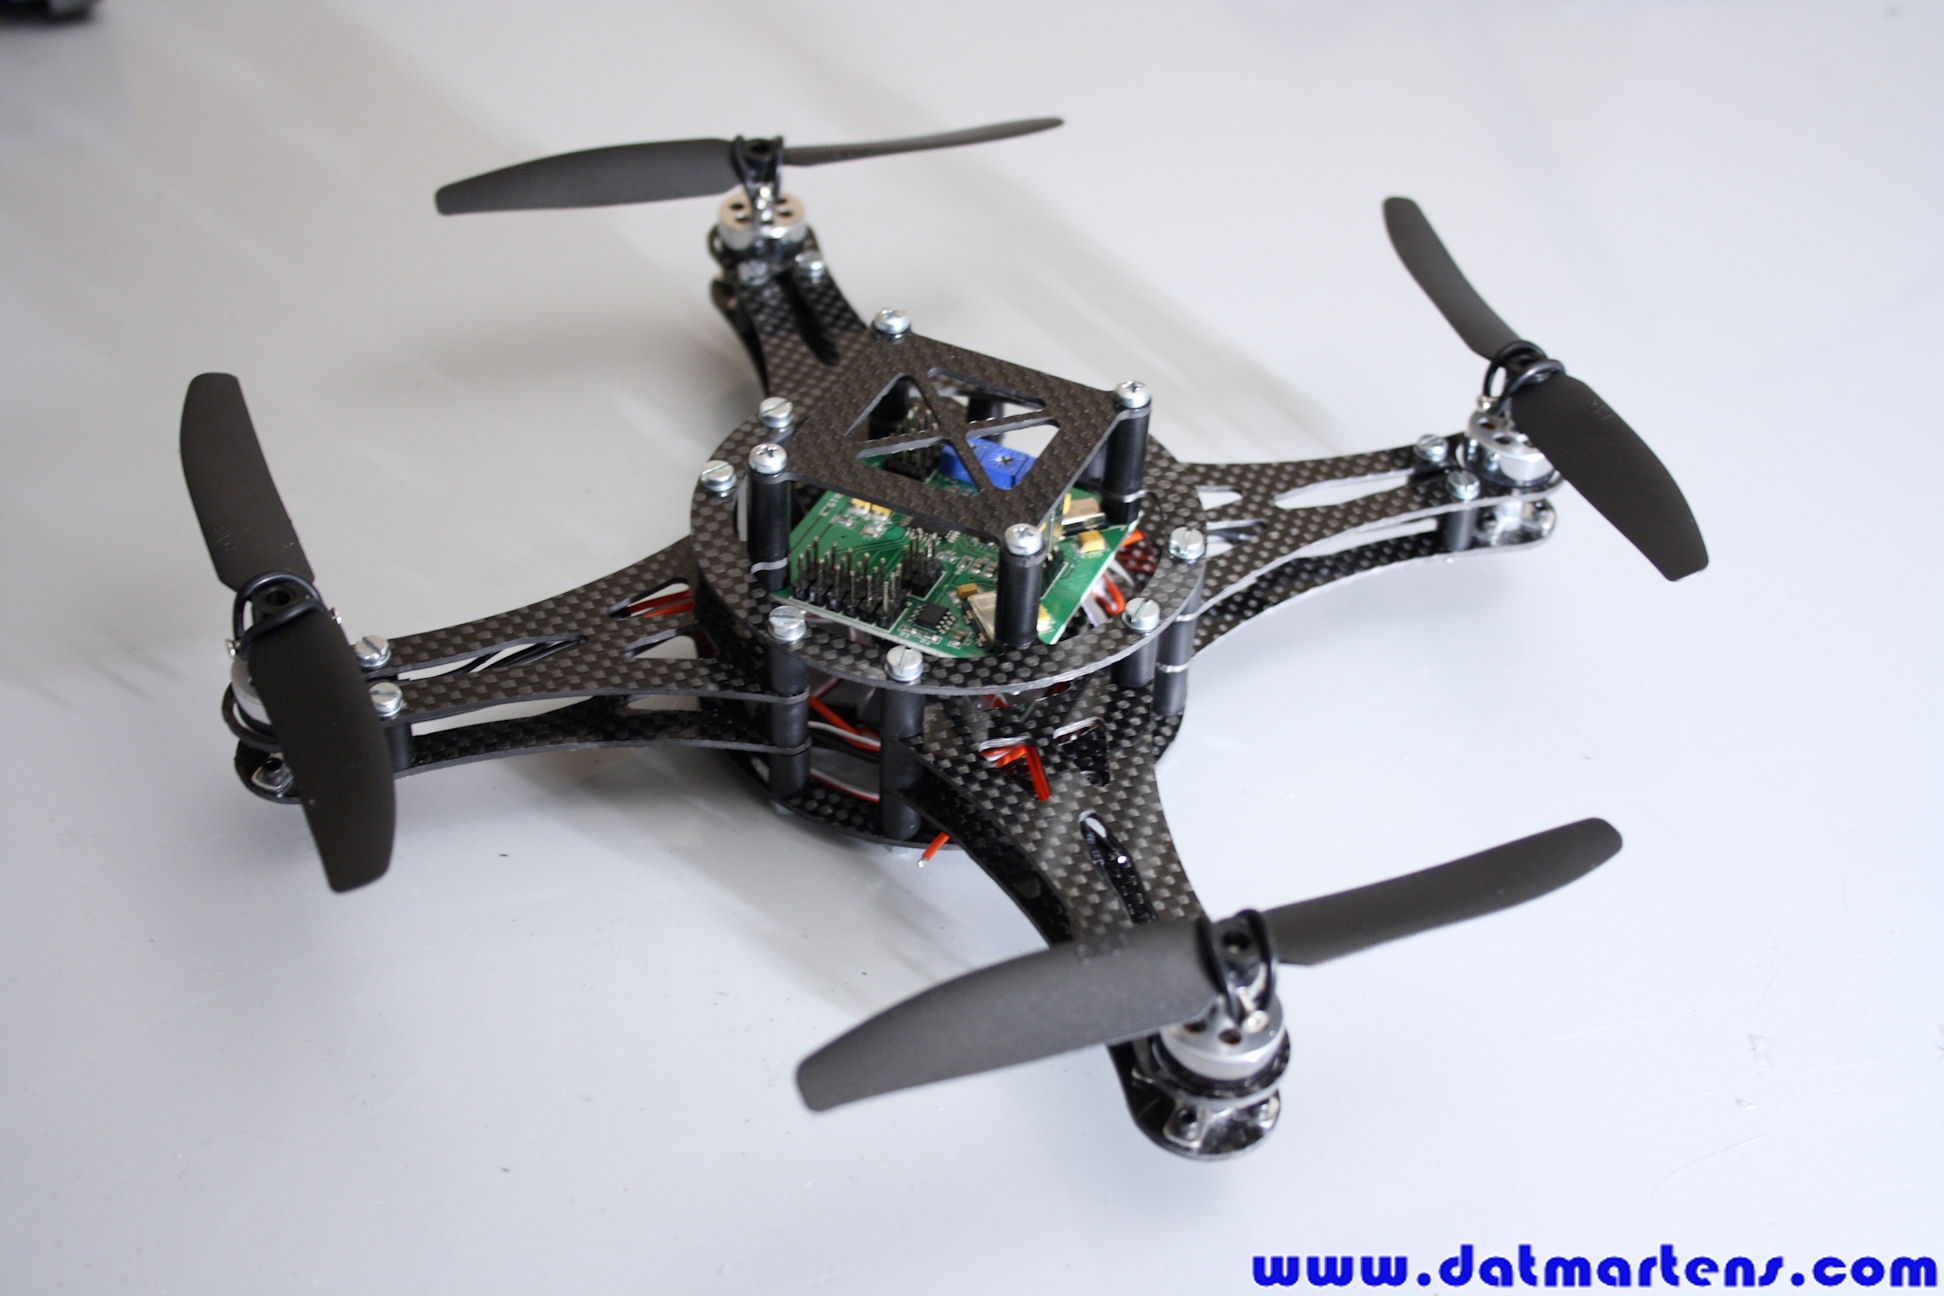 http://gallery.datmartens.com/thumb.php?src=cache%2Falbums%2FProjecten%2FQuadcopter%2FPrototype+2%2FDPP_0177.JPG&size=450&ratio=OAR&save=1